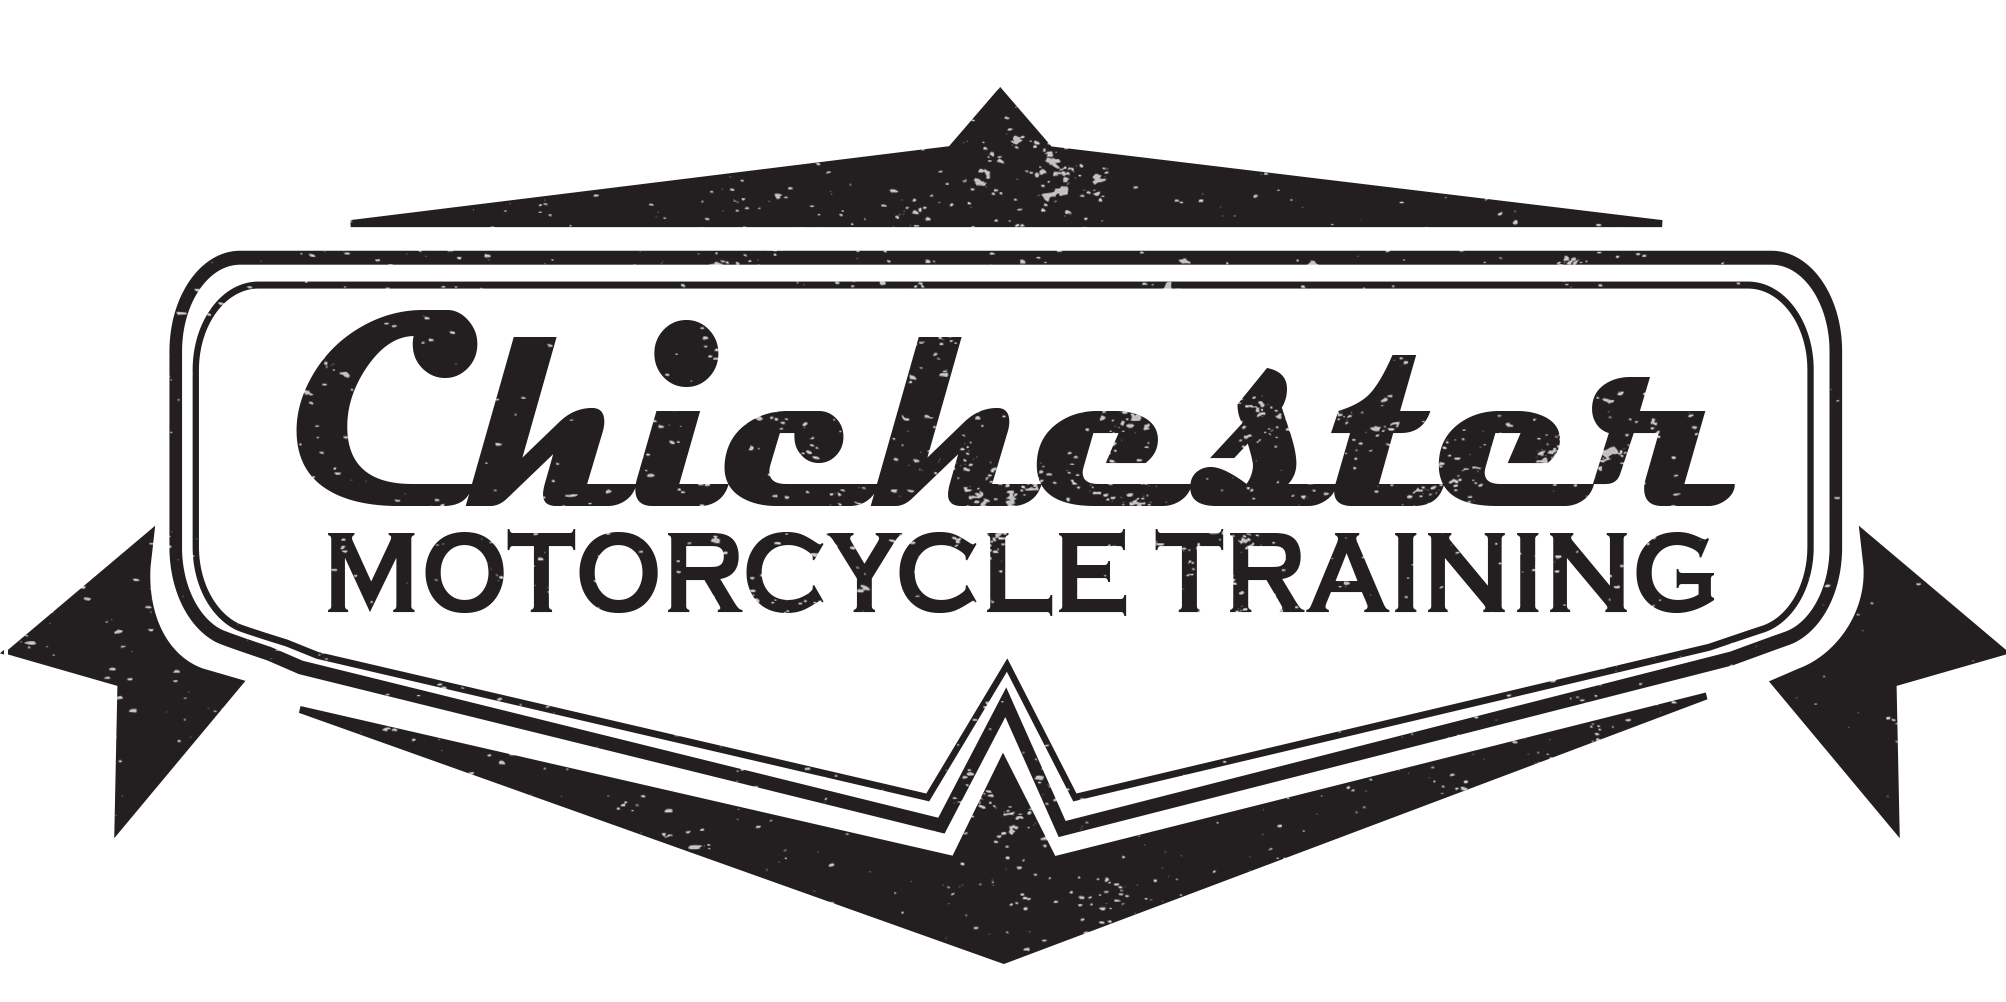 Chichester Motorcycle Training